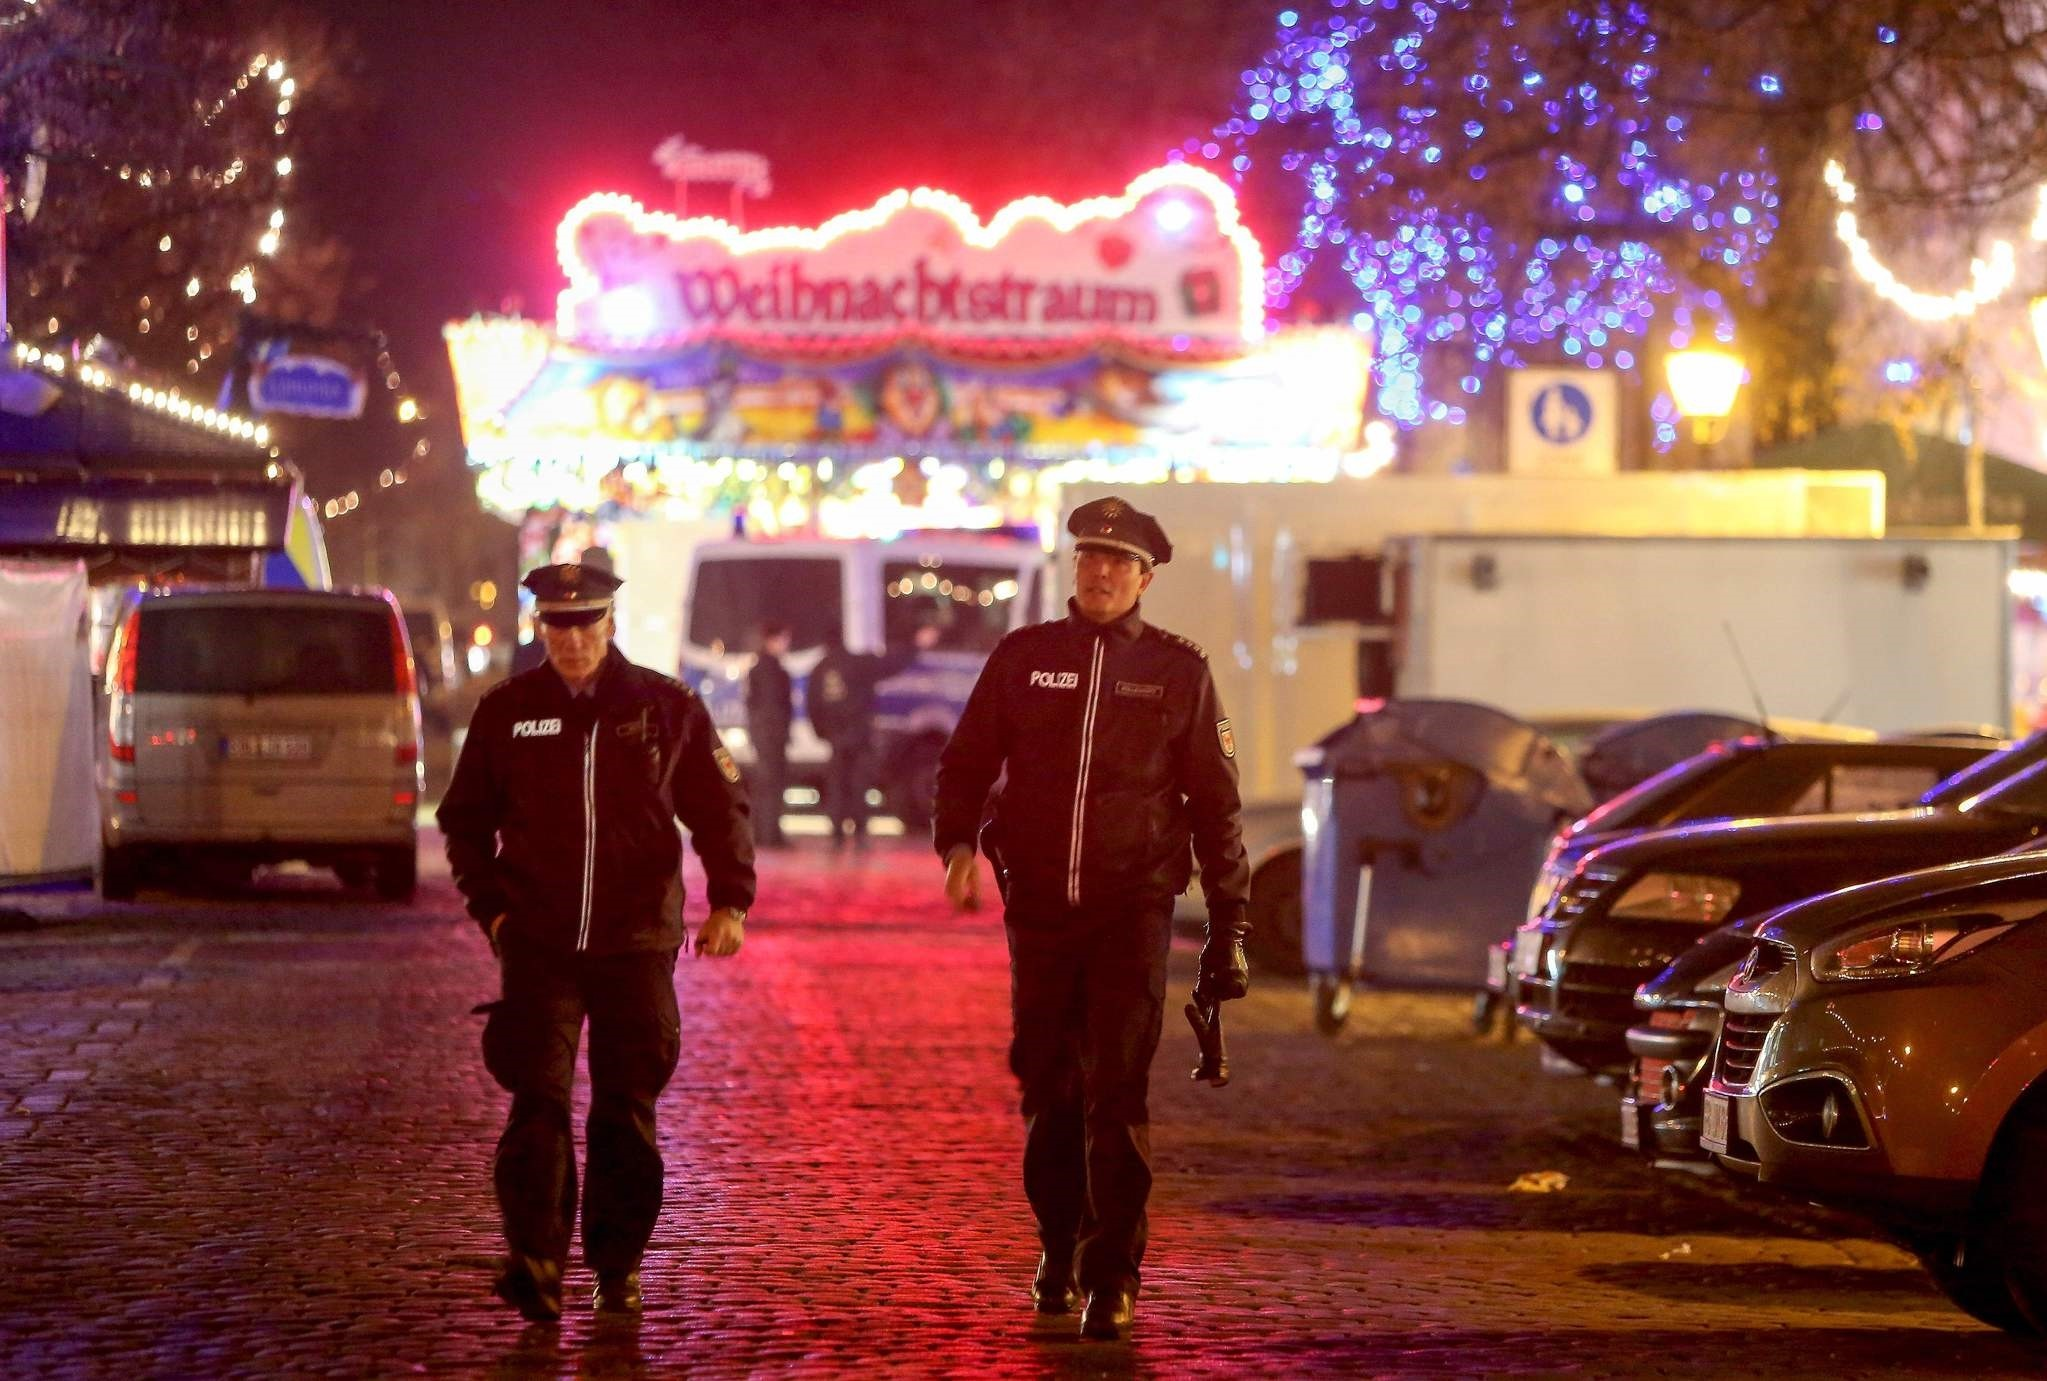 Police patrol the area after an explosive was found at Christmas market in Potsdam, near Berlin, Germany on December 1, 2017. (AFP Photo)